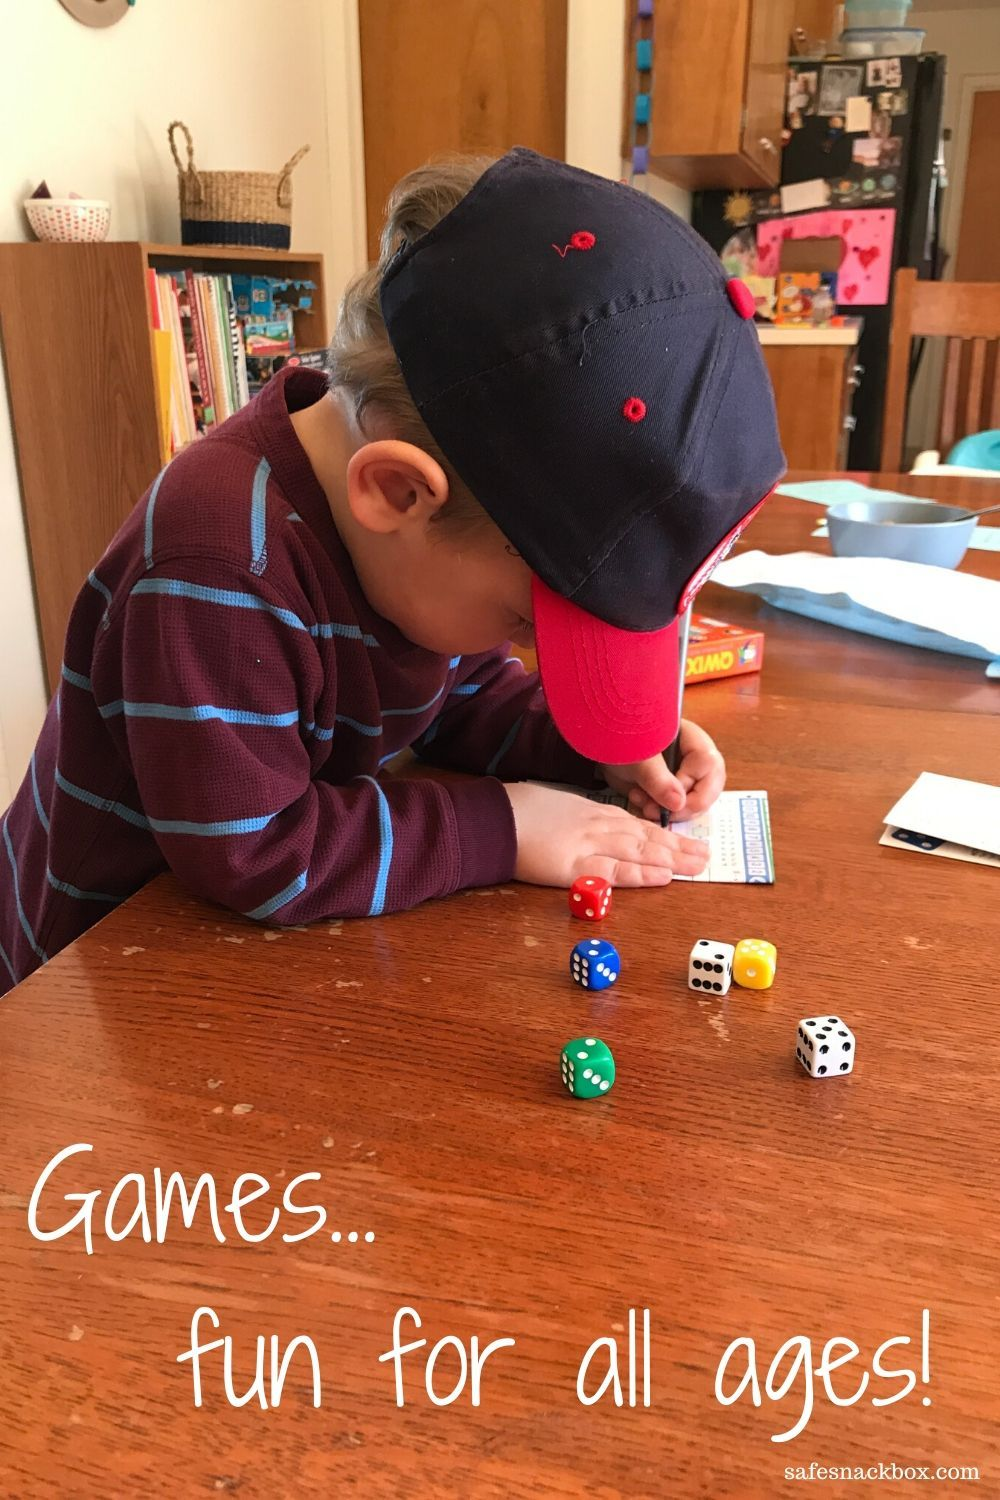 A list of games to play with family members of all ages